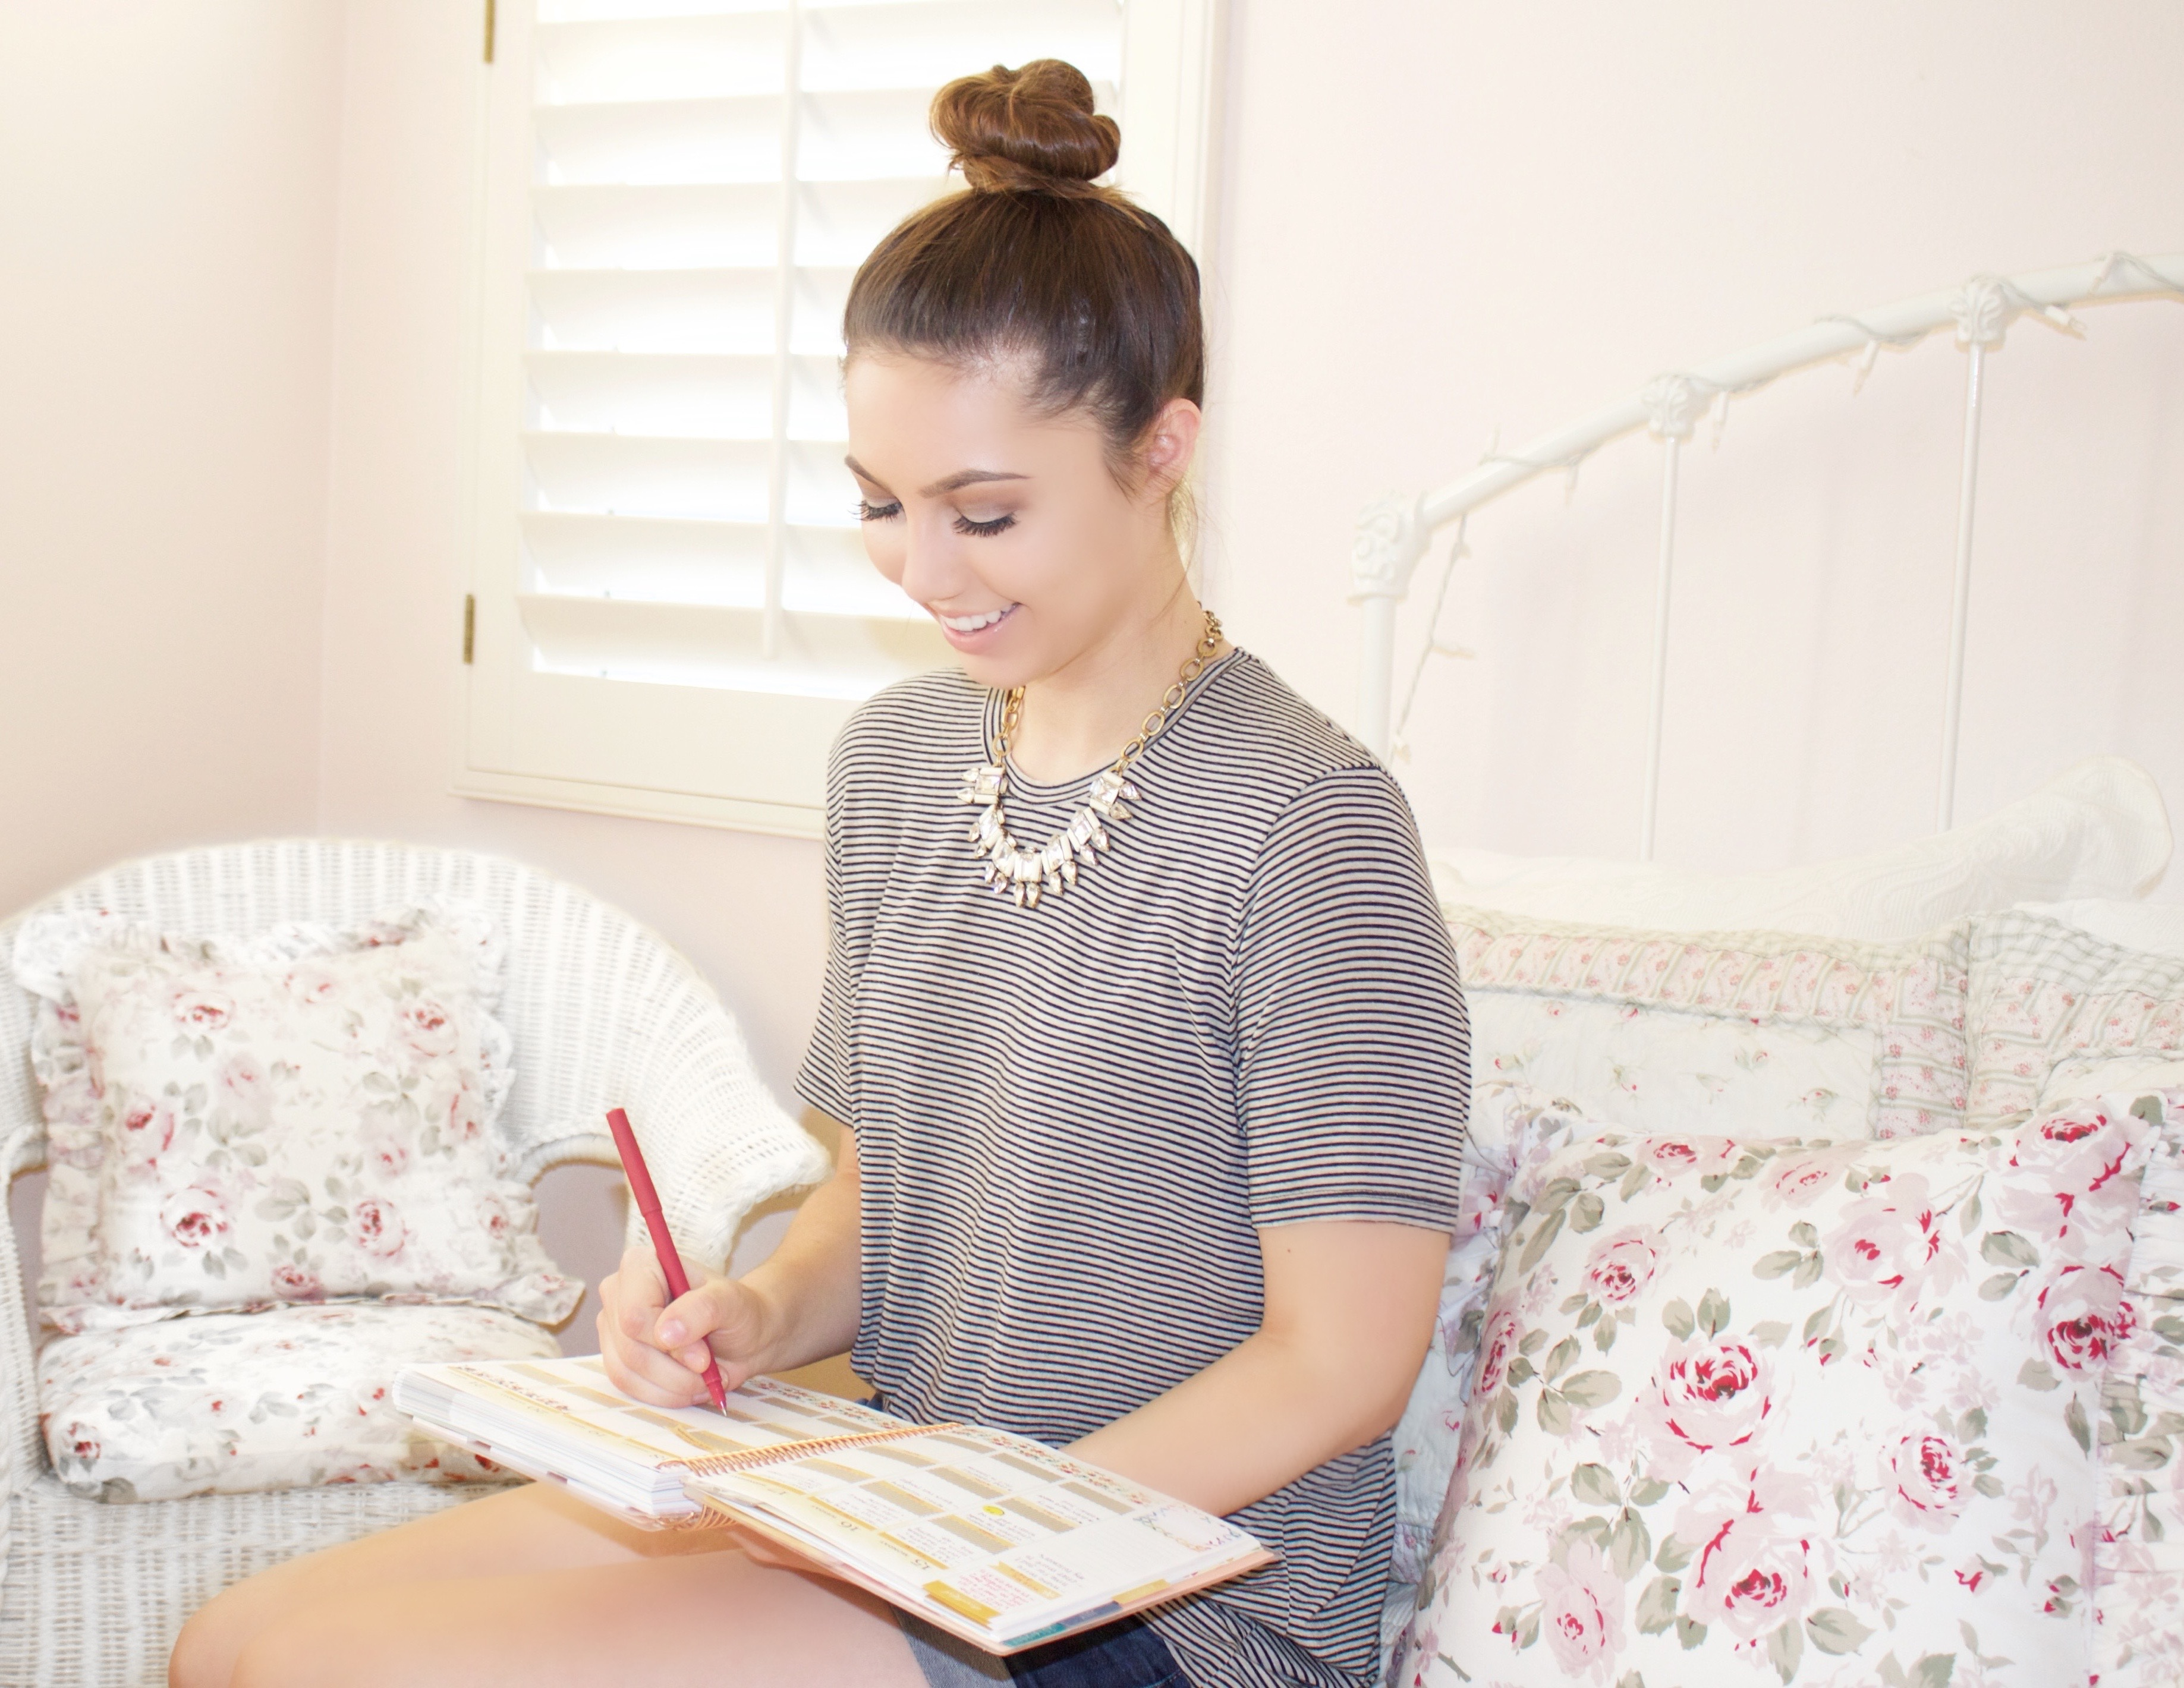 Erin Condren LifePlanner - Kendall of My Styled Life